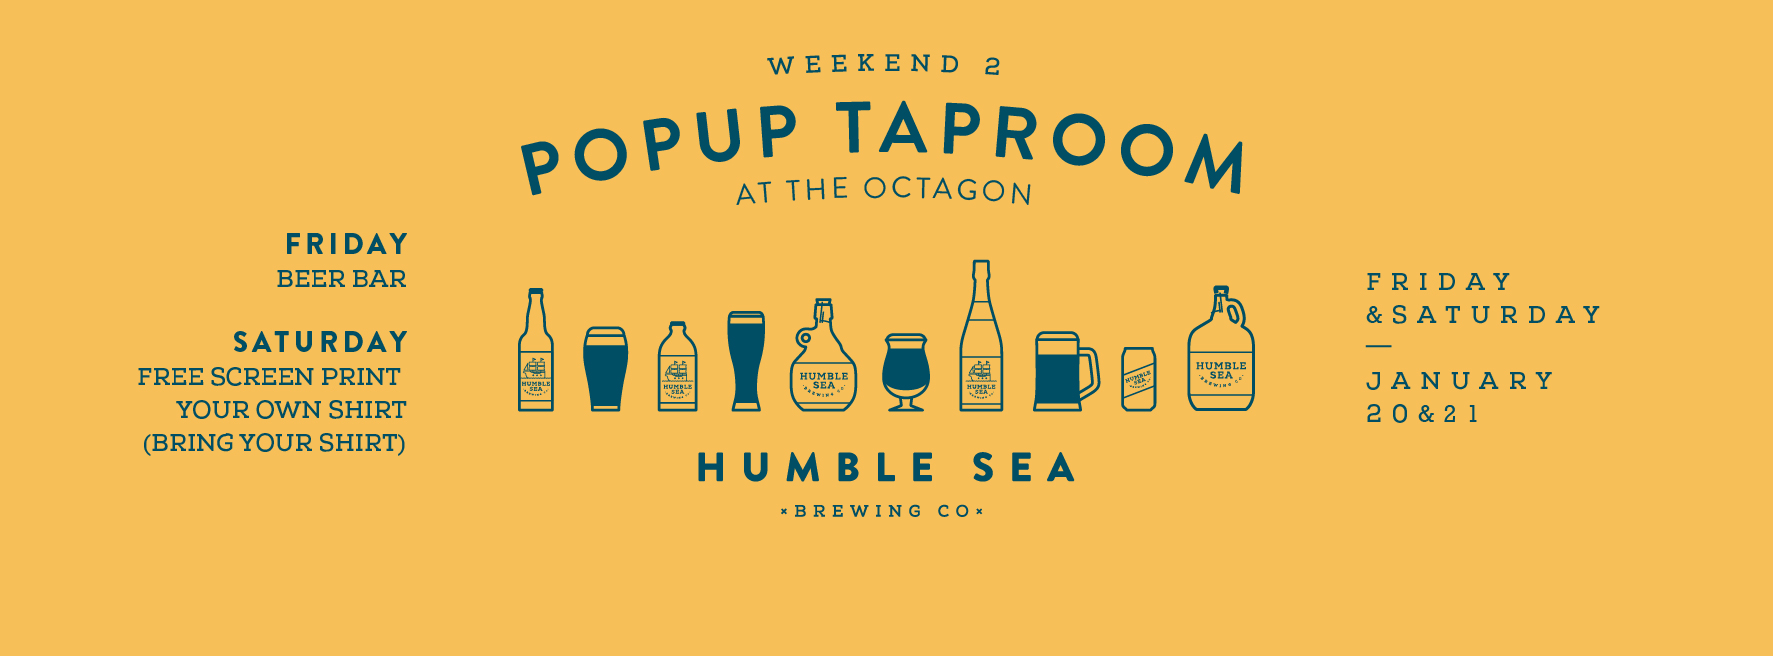 Humble Sea_popup-octagon-15.jpg